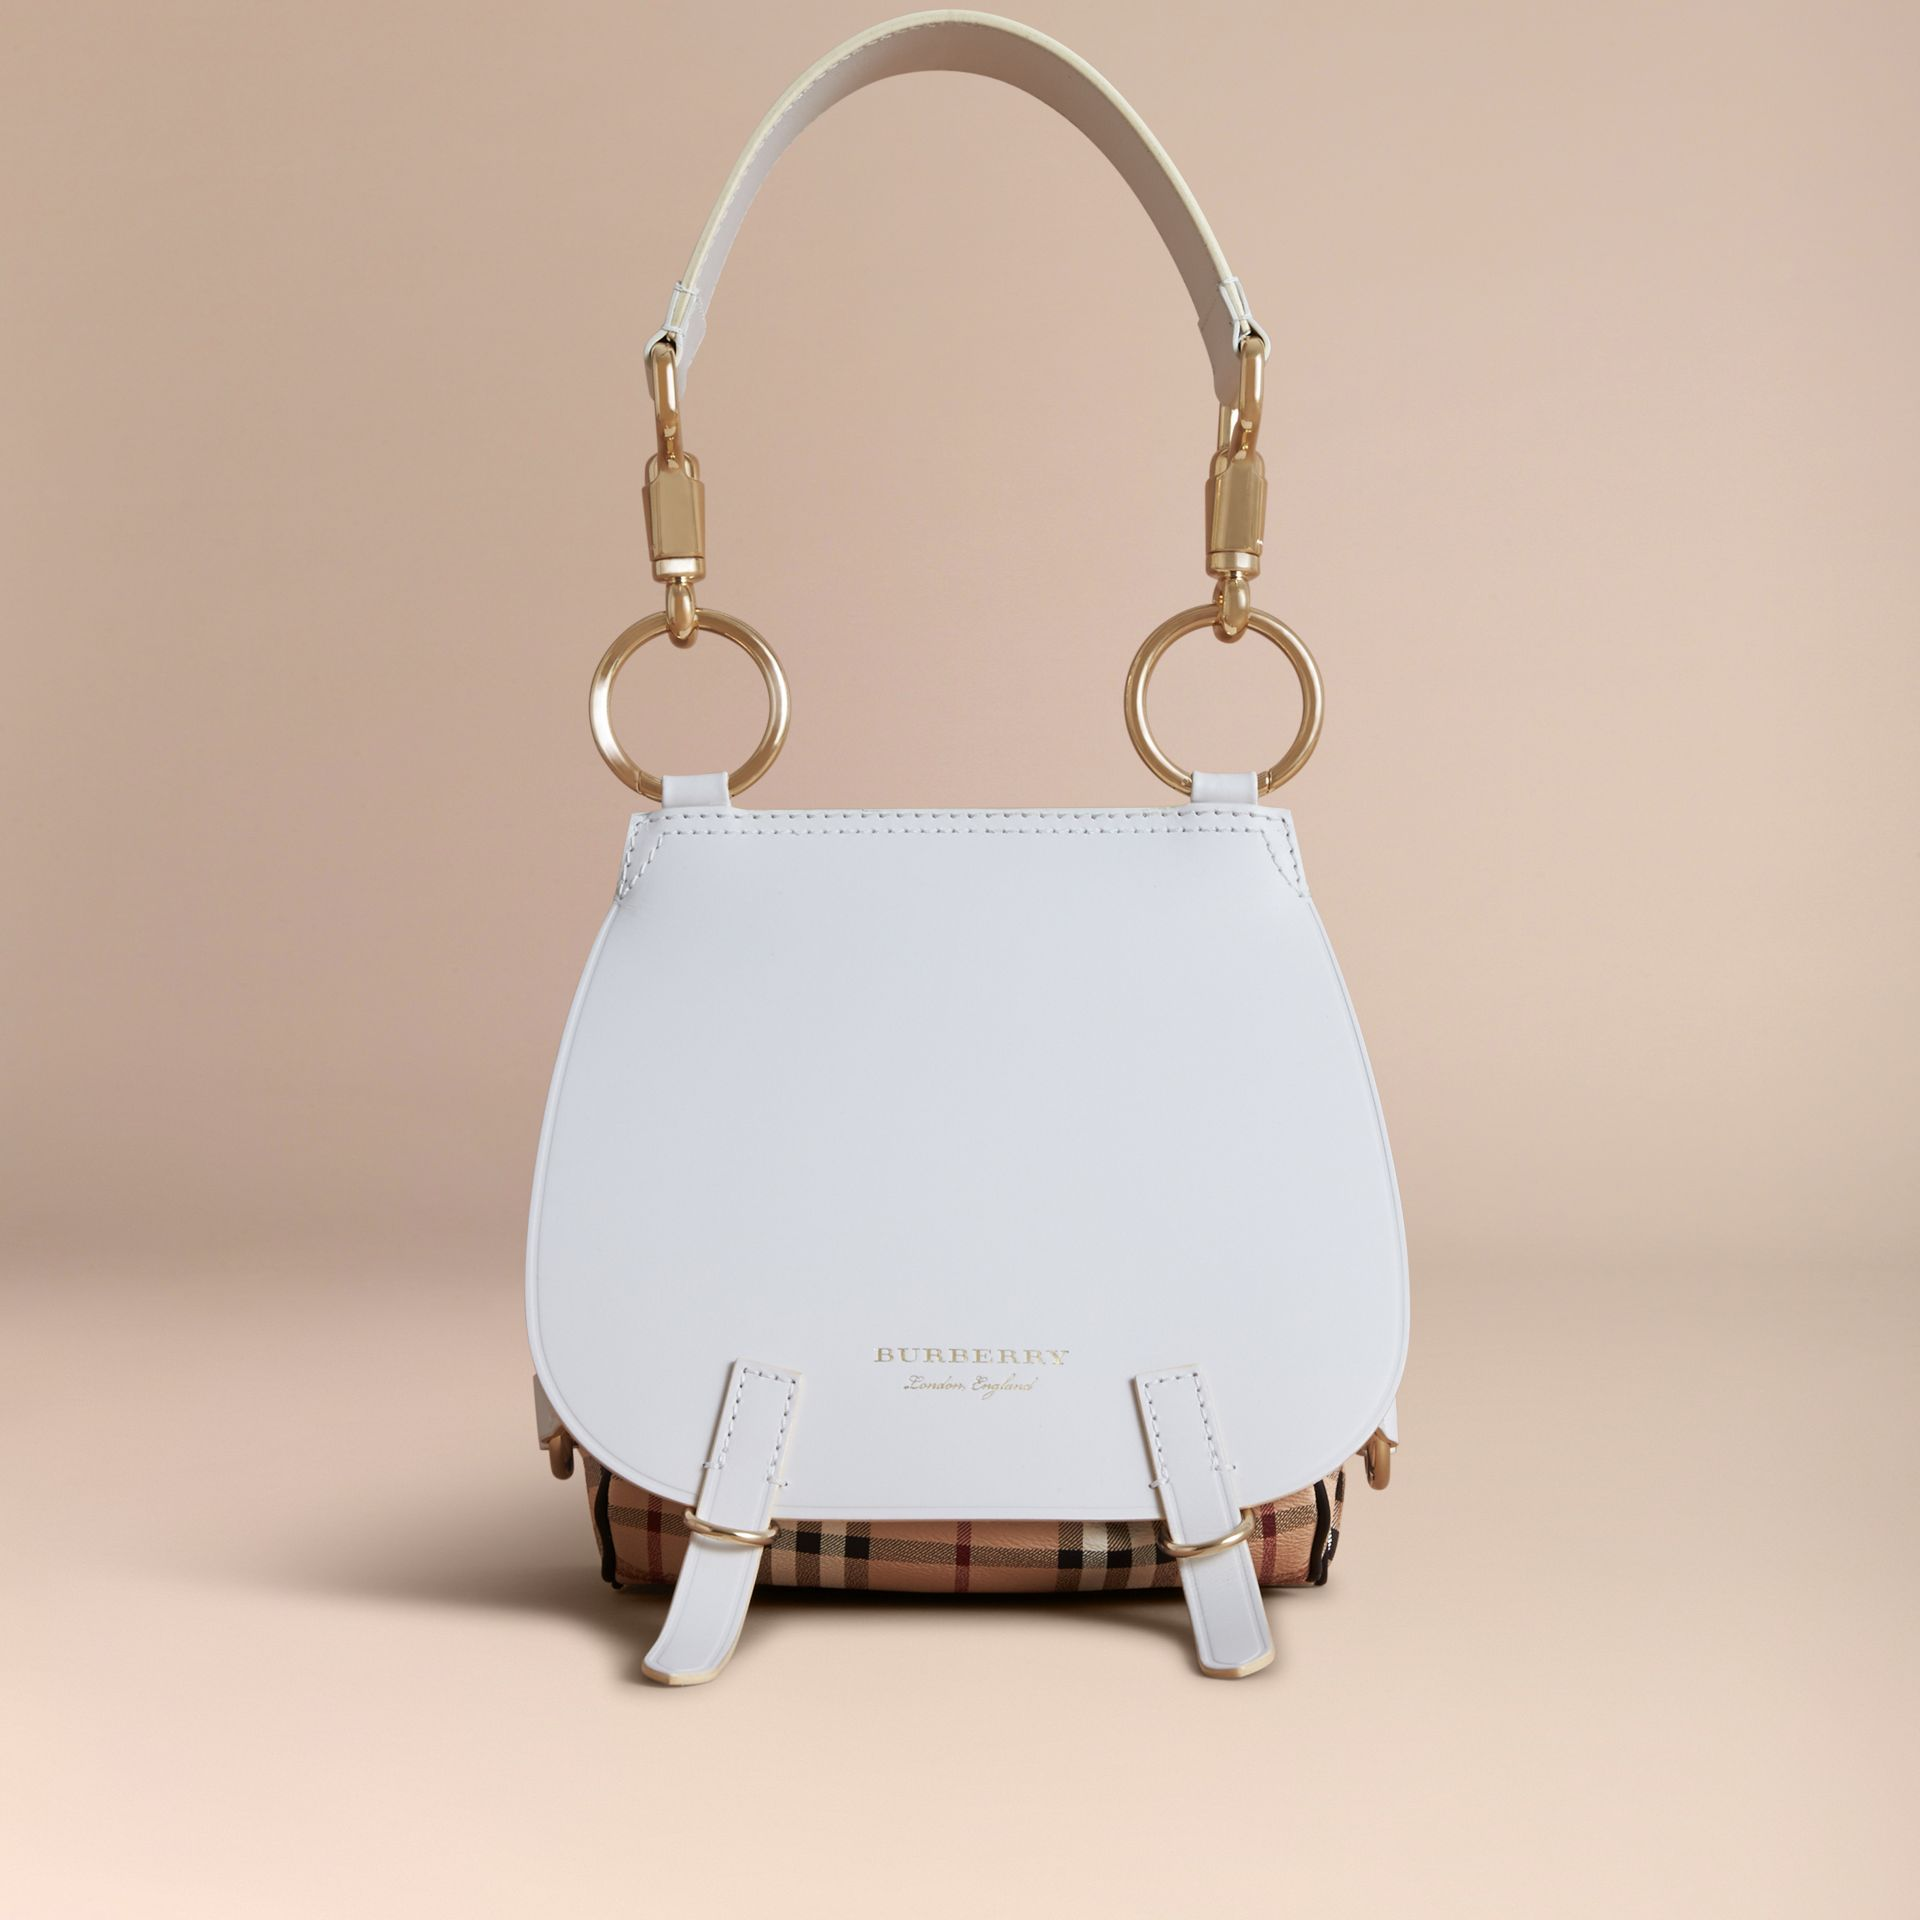 Sac The Bridle en cuir et tissu Haymarket check (Naturel) - Femme | Burberry - photo de la galerie 7